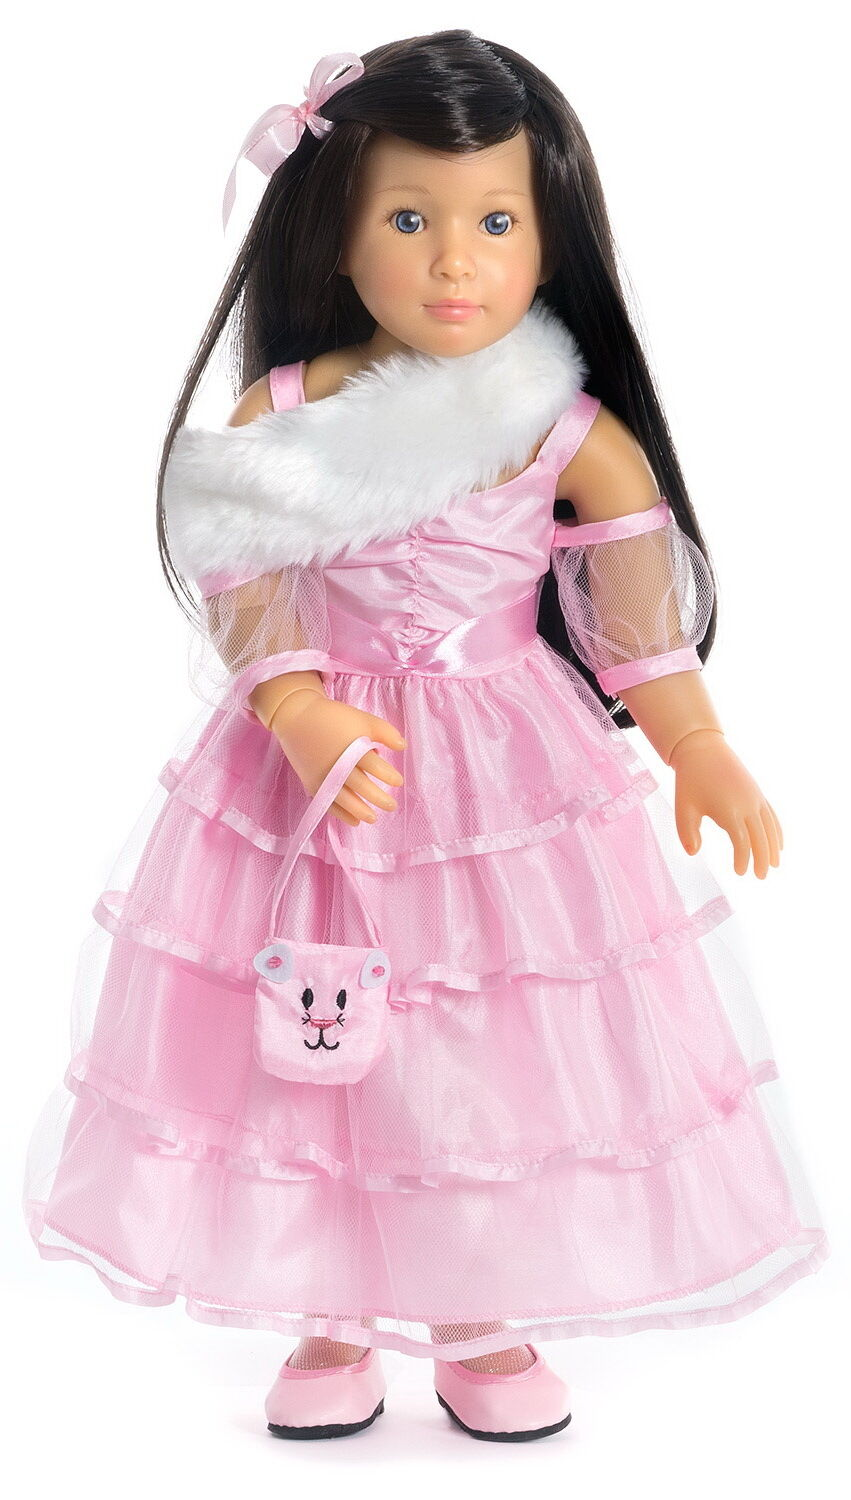 PRINCESSE Rosa POUPEE KIDZ'N'CATS  S.Hartmann COLLECTION WITH HEART AND SOUL